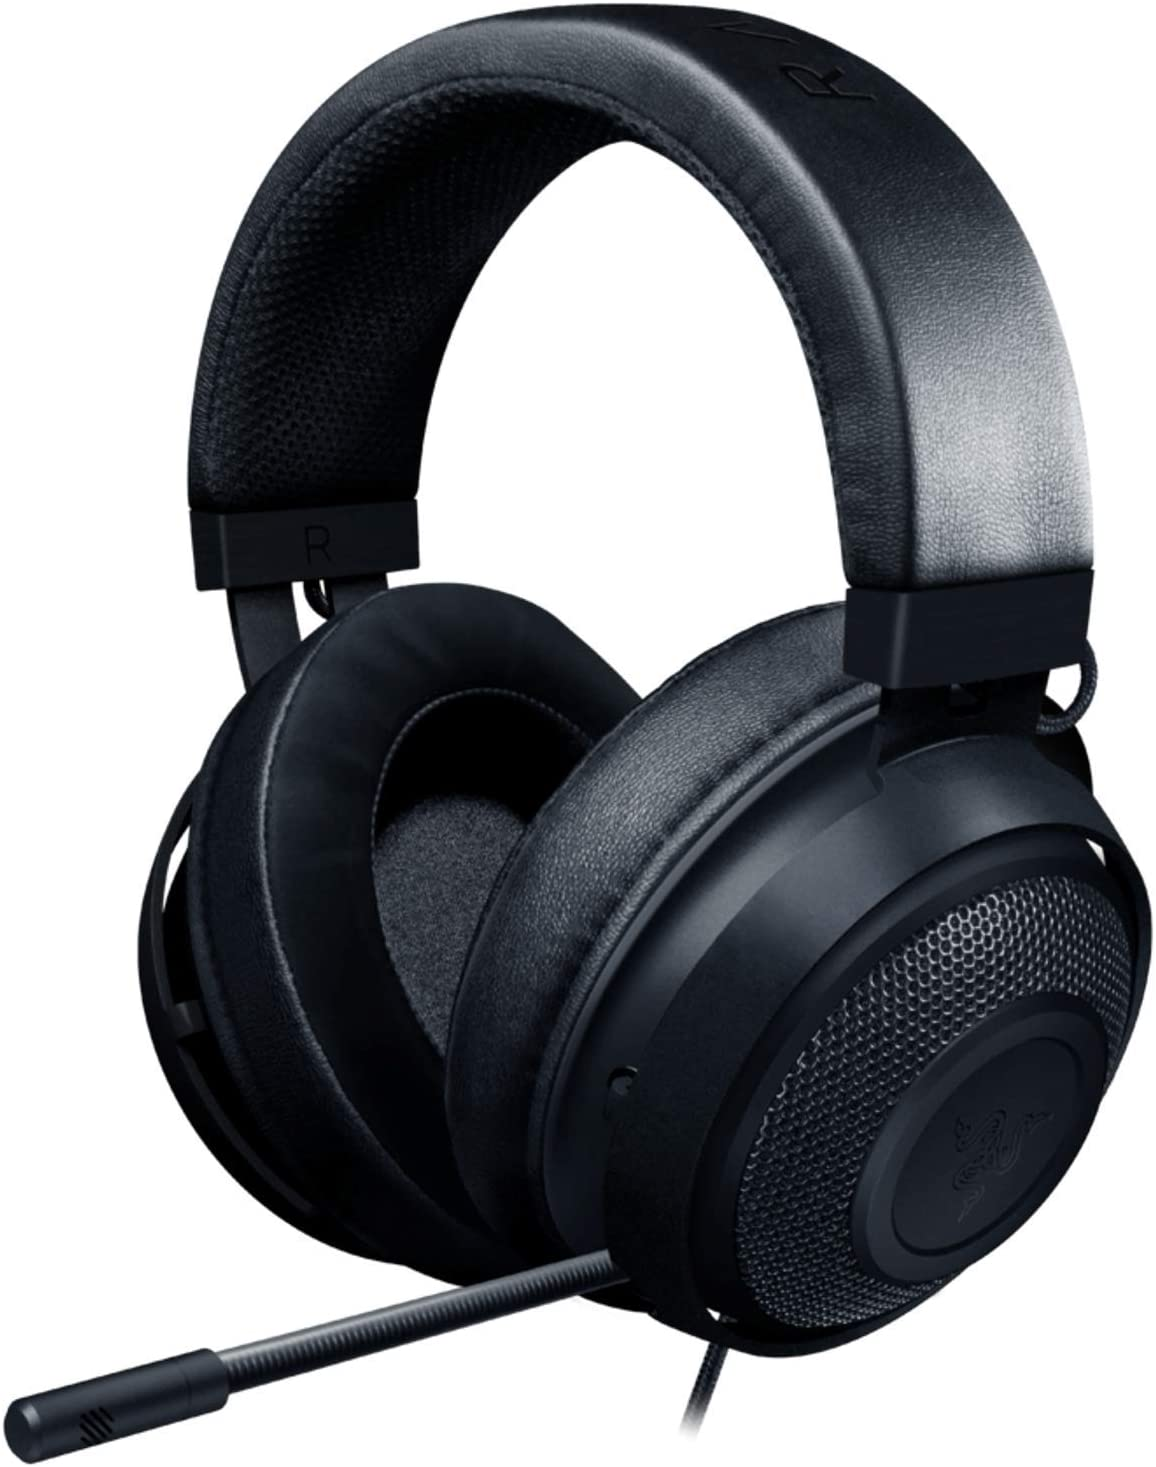 Razer Kraken Gaming Headset: Lightweight Aluminum Frame - Retractable Cardioid Mic - For PC, PS4, Nintendo Switch - 3.5 mm Headphone Jack - Black